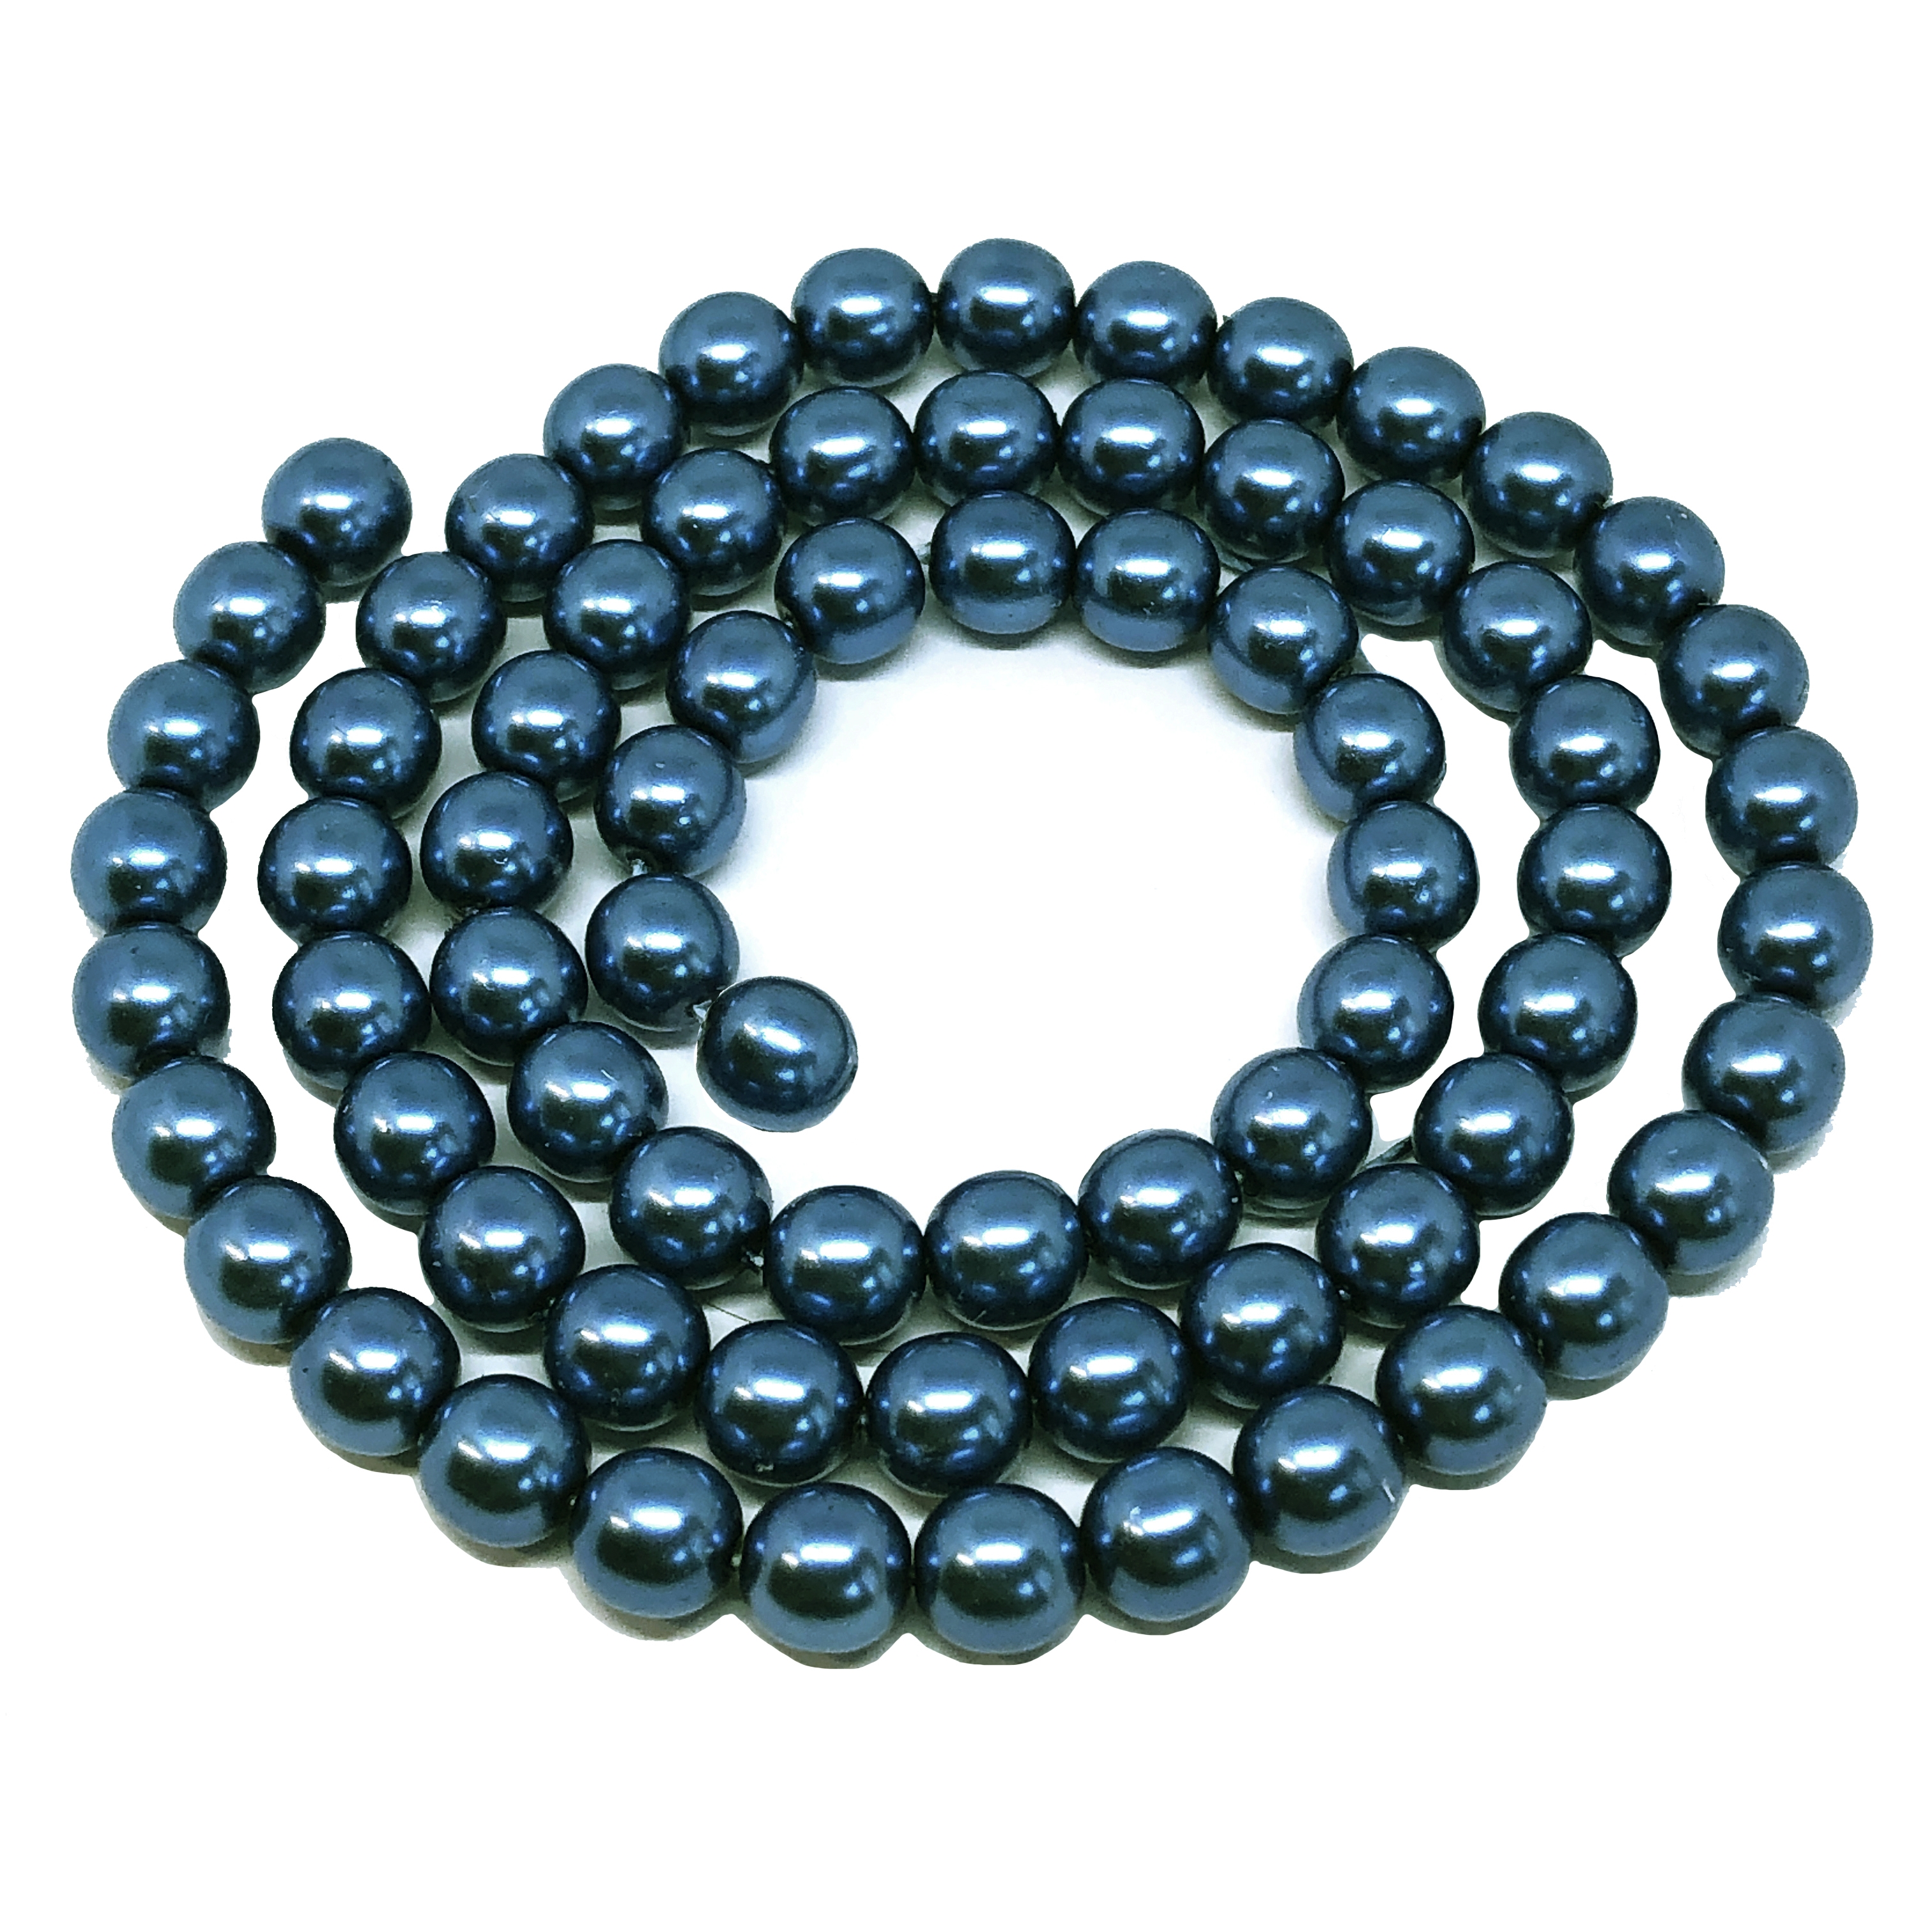 Montana blue pearl beads, 8mm bead, glass pearl, Czech, B'sue Boutiques, bead, jewelry making, beading supplies, vintage supplies, pearl, pearl beads, glass beads, jewelry supplies, jewelry beads, blue beads, 01511